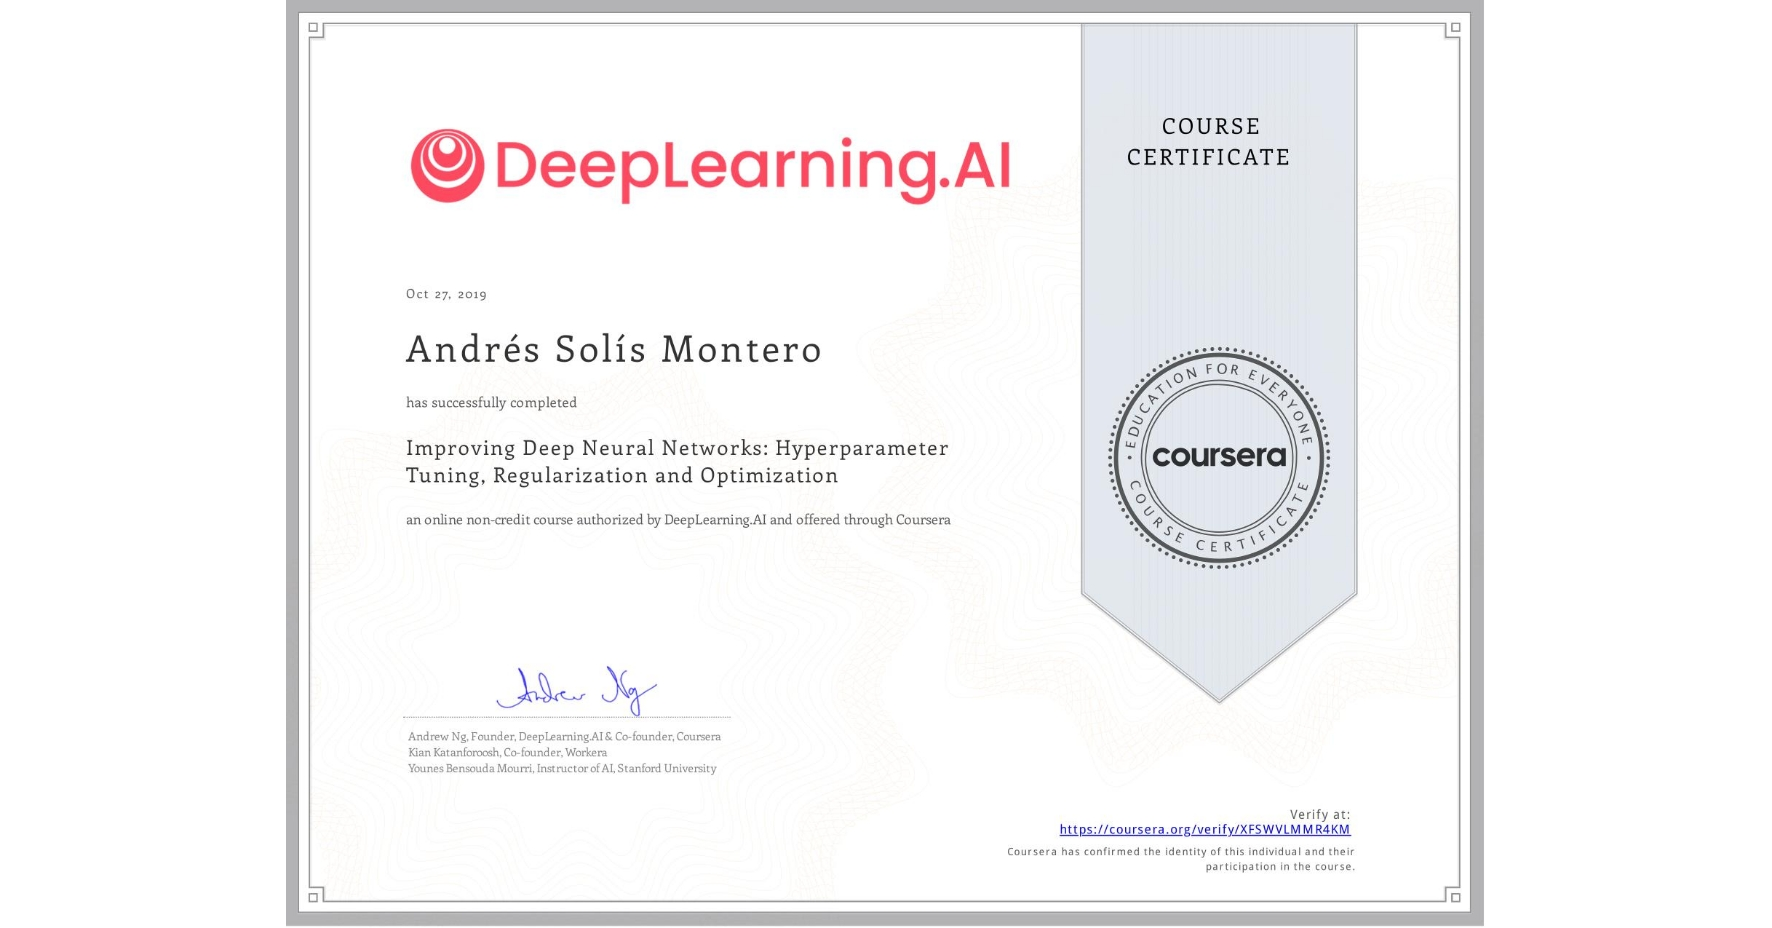 View certificate for Andrés Solís Montero, Improving Deep Neural Networks: Hyperparameter tuning, Regularization and Optimization, an online non-credit course authorized by DeepLearning.AI and offered through Coursera